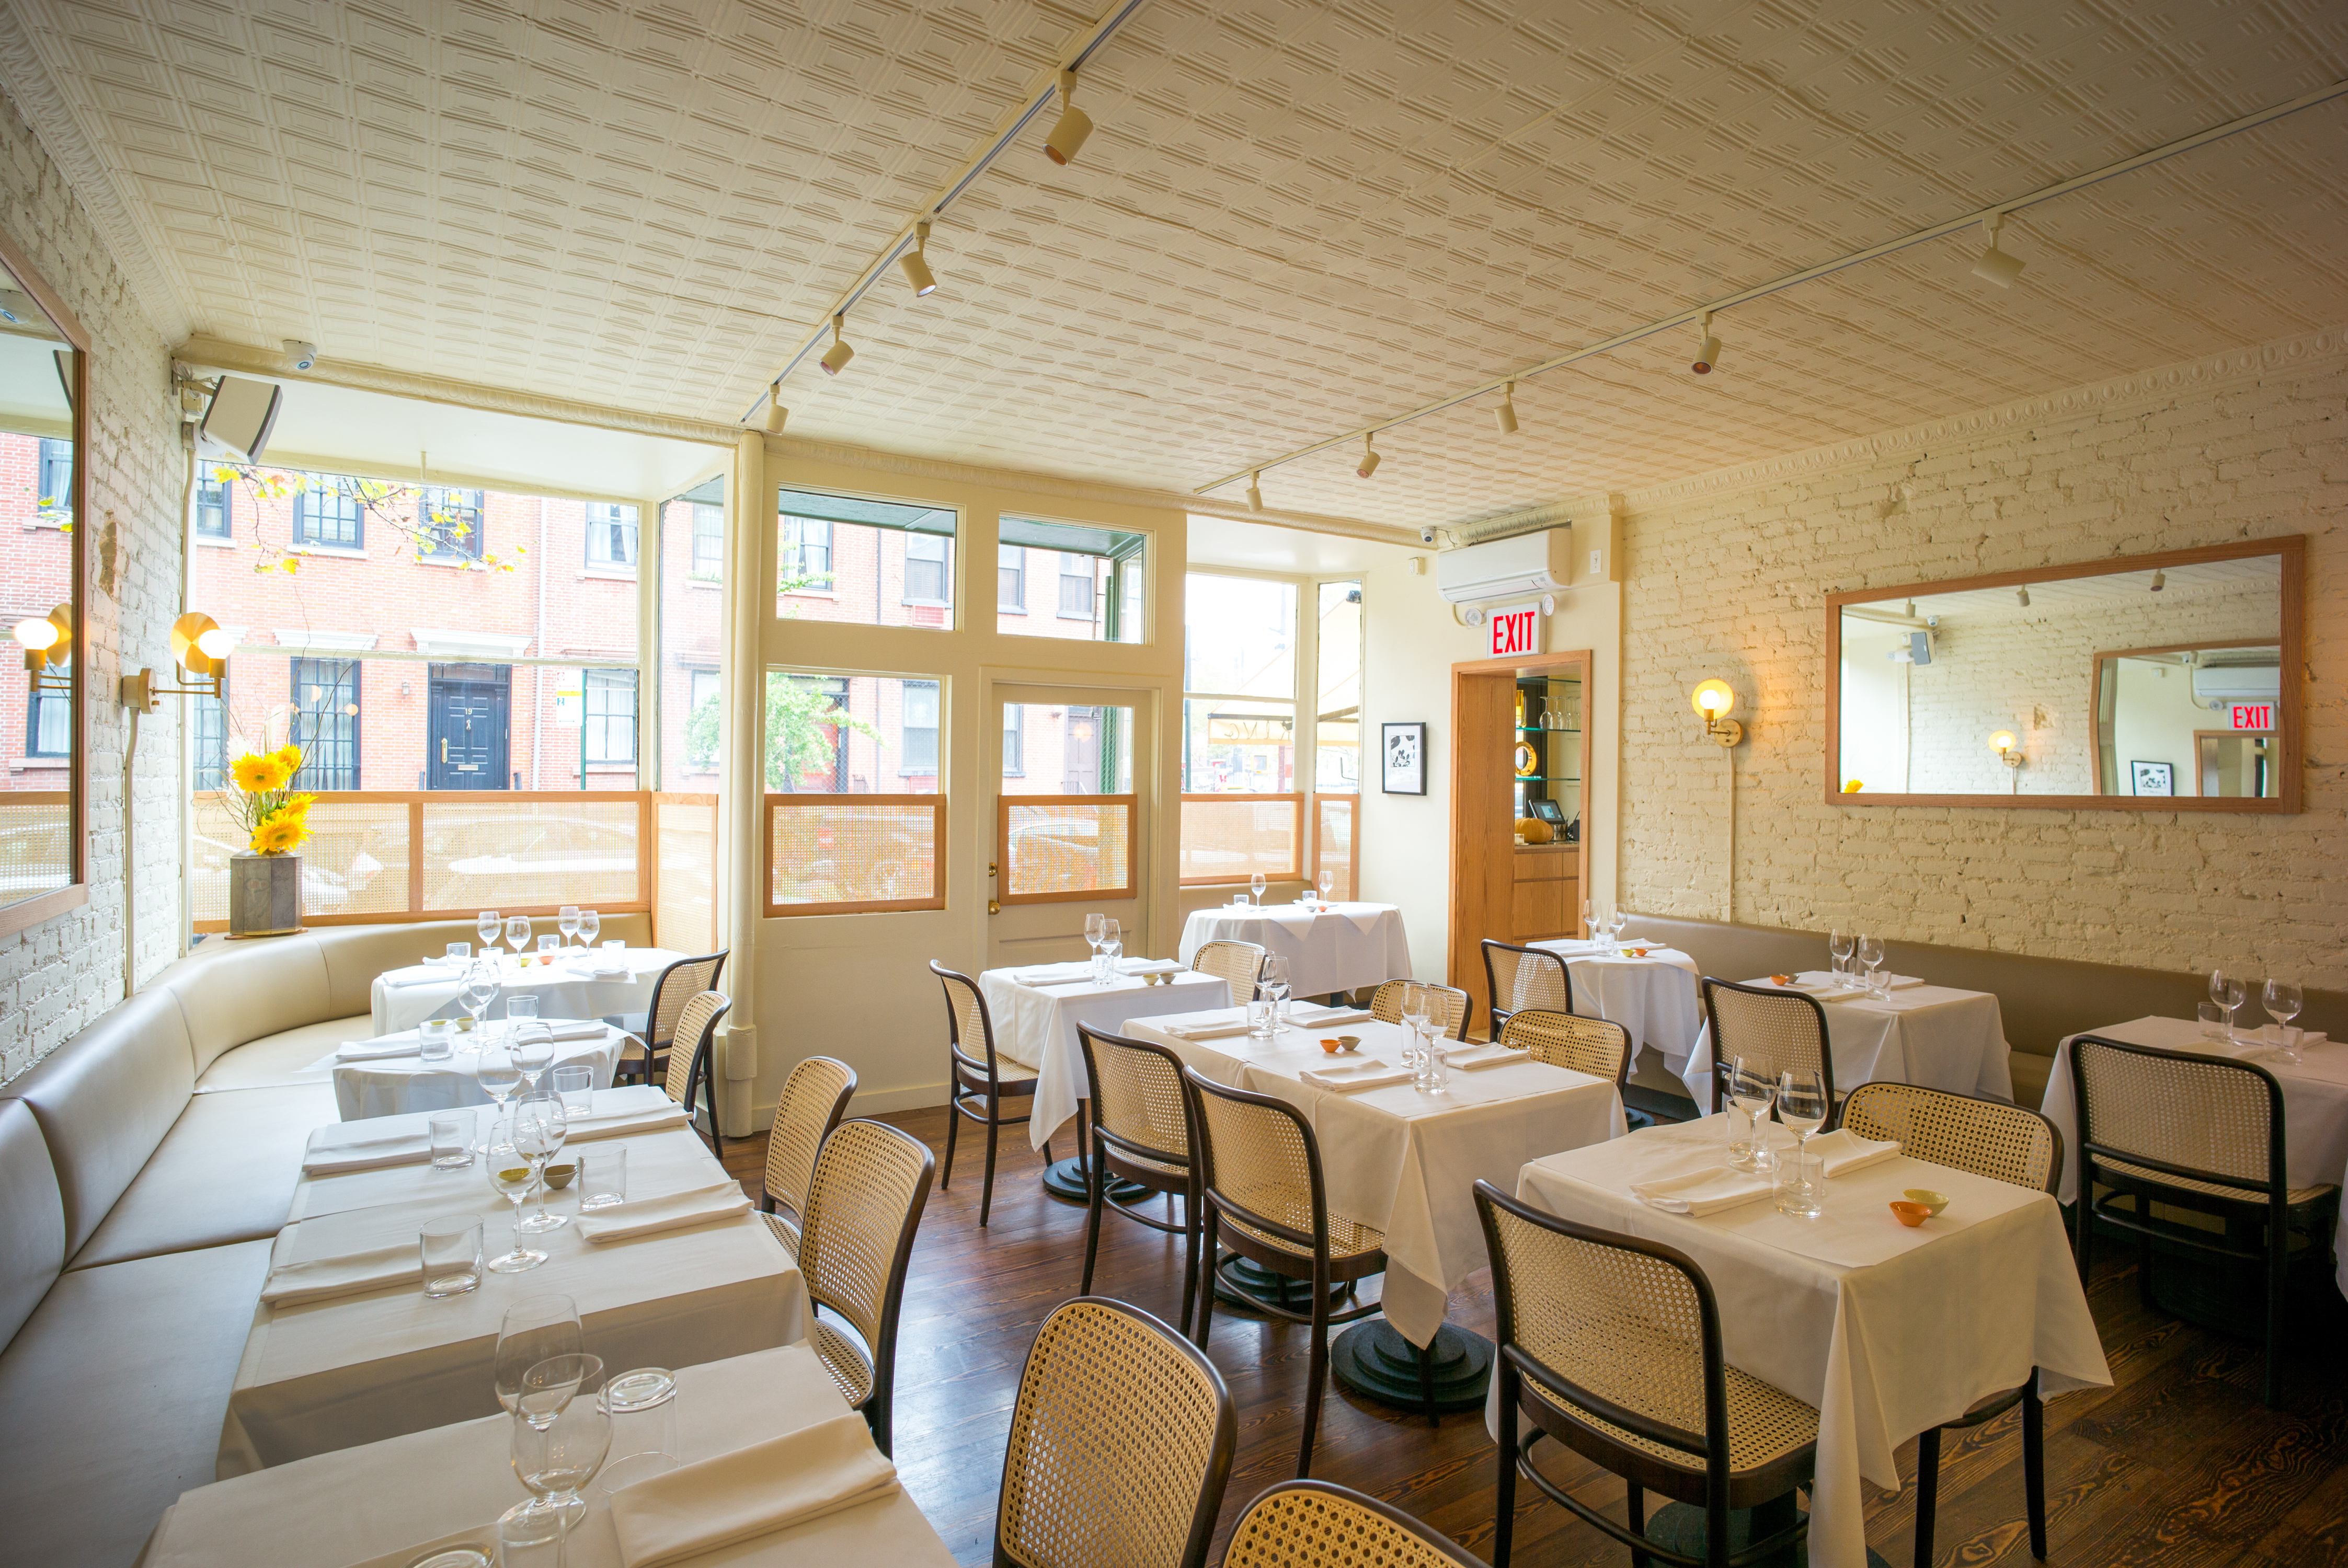 A sunny dining room with white tablecloth tables